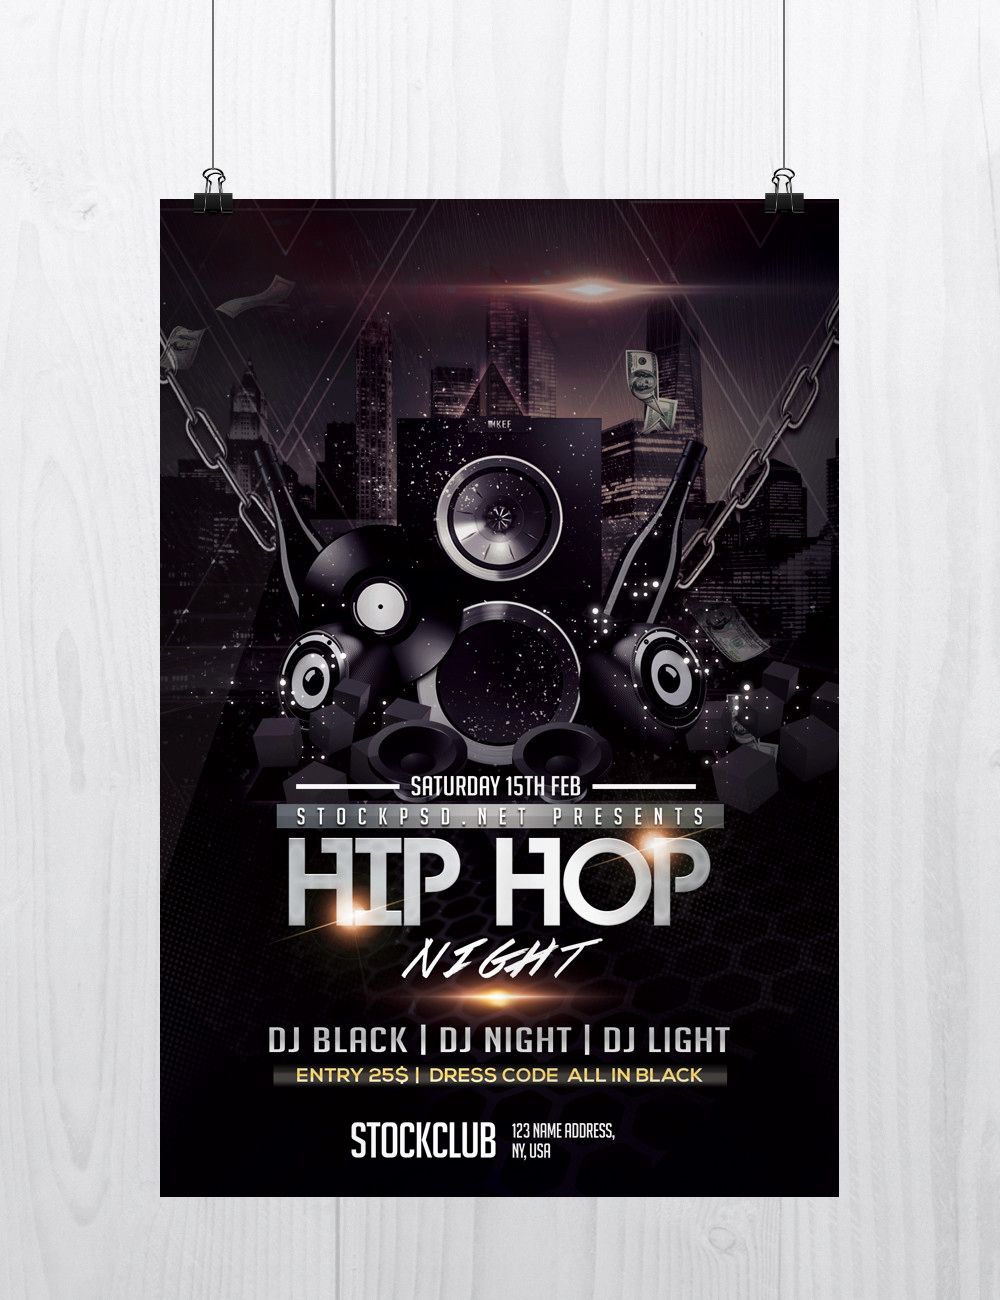 Free Downloadable Flyer Templates Luxury Hip Hop Music Download Free Psd Flyer Template Stockpsd